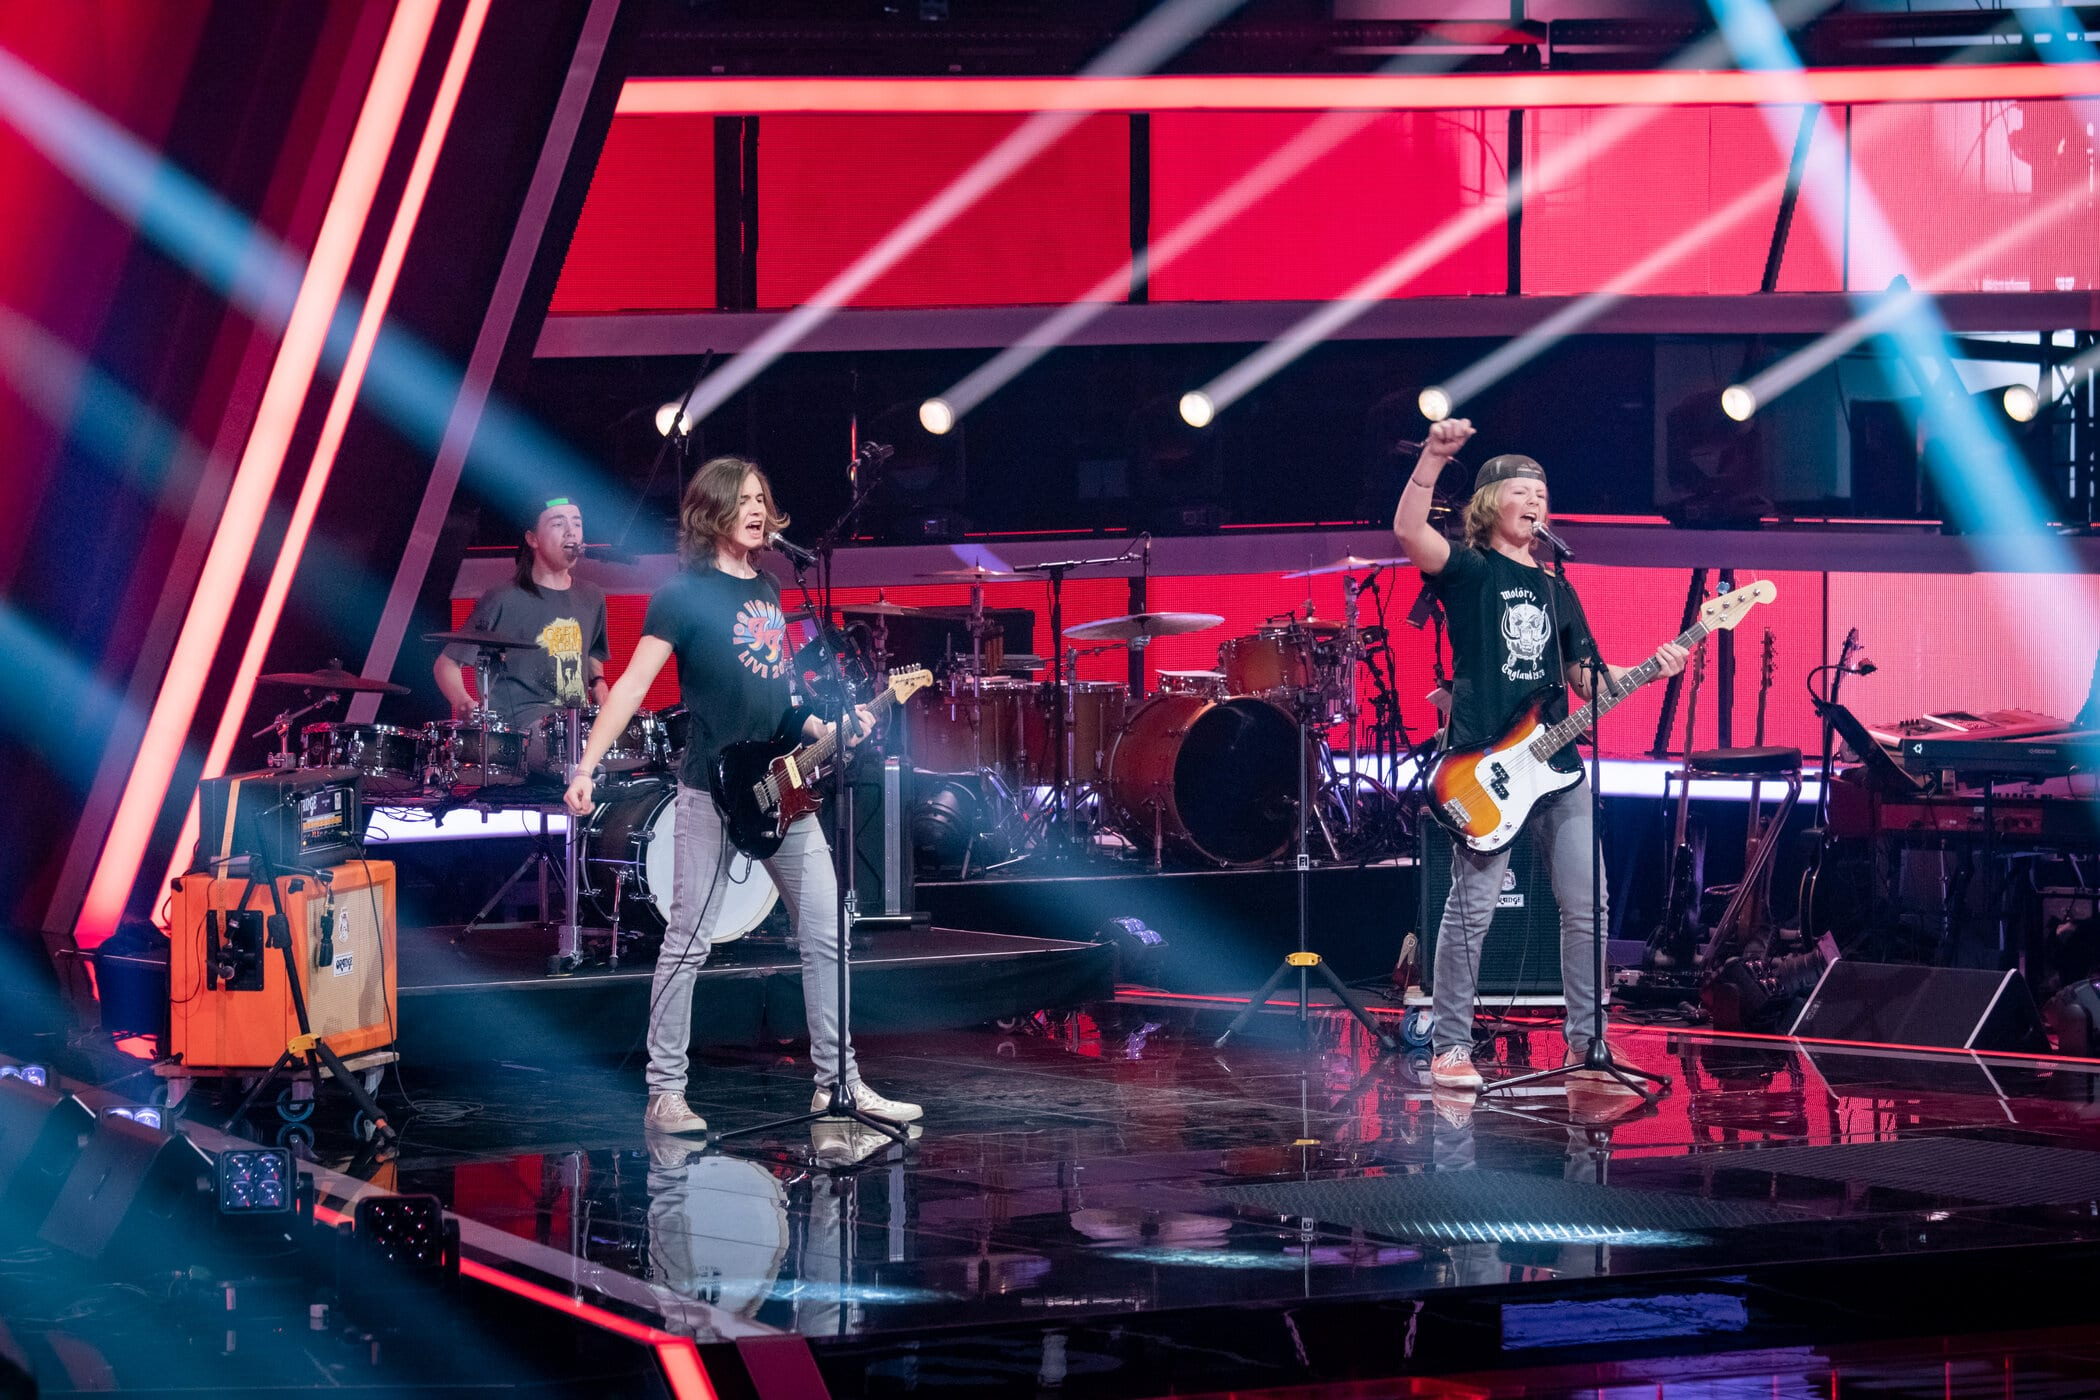 Start für #VoiceKids 2021 am 27.2. mit den Batteries of Rock